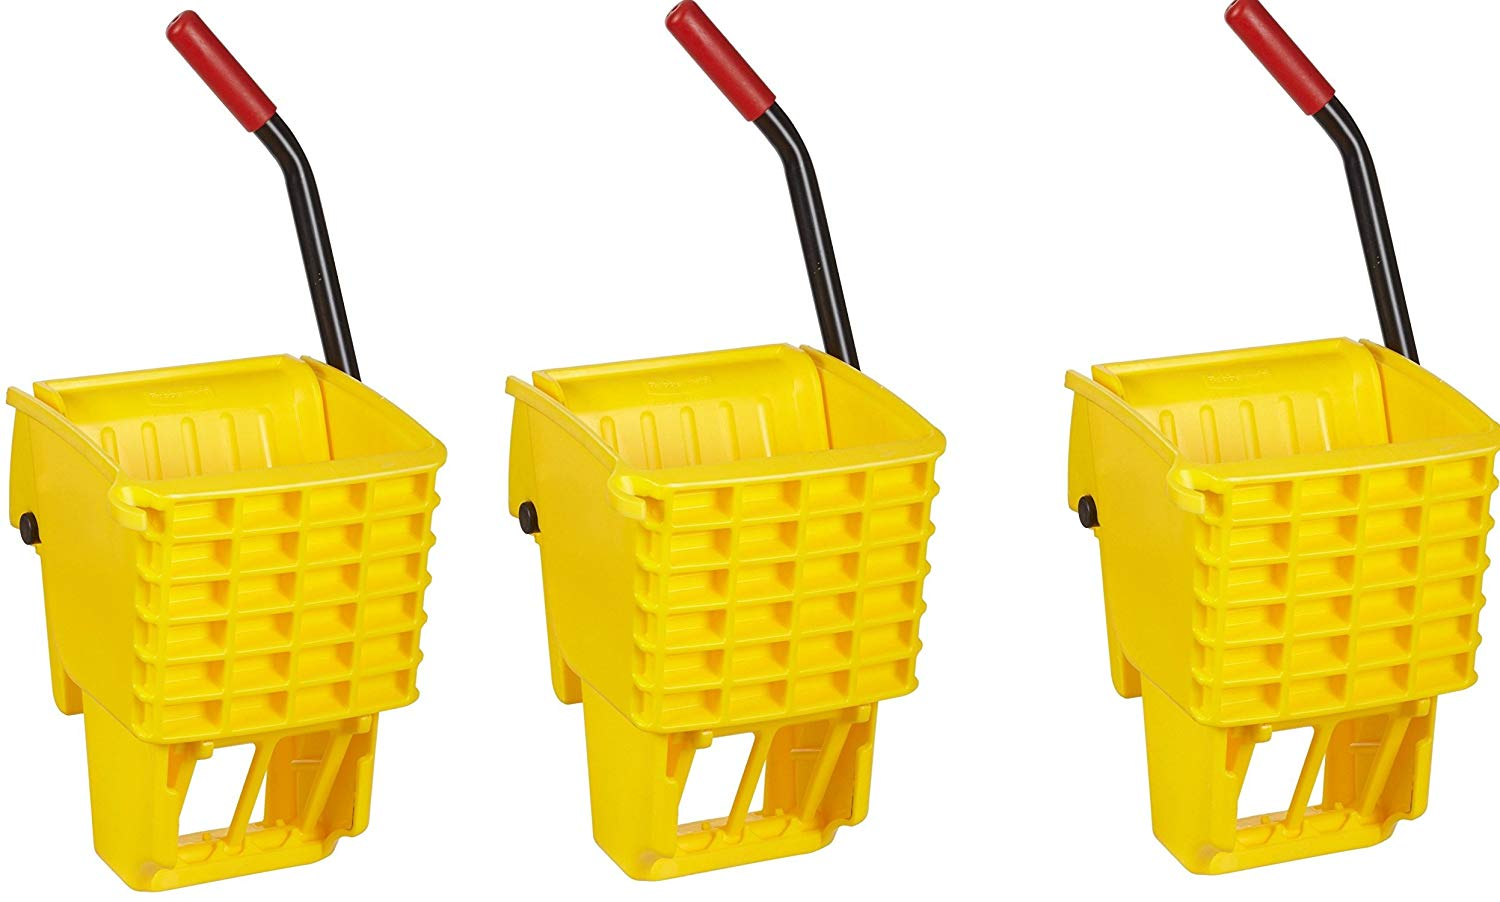 Rubbermaid Commercial FG612788YEL Side-Press Wringer for 13- to 32-ounceWaveBrake Mop Buckets, Yellow (3 PACK)